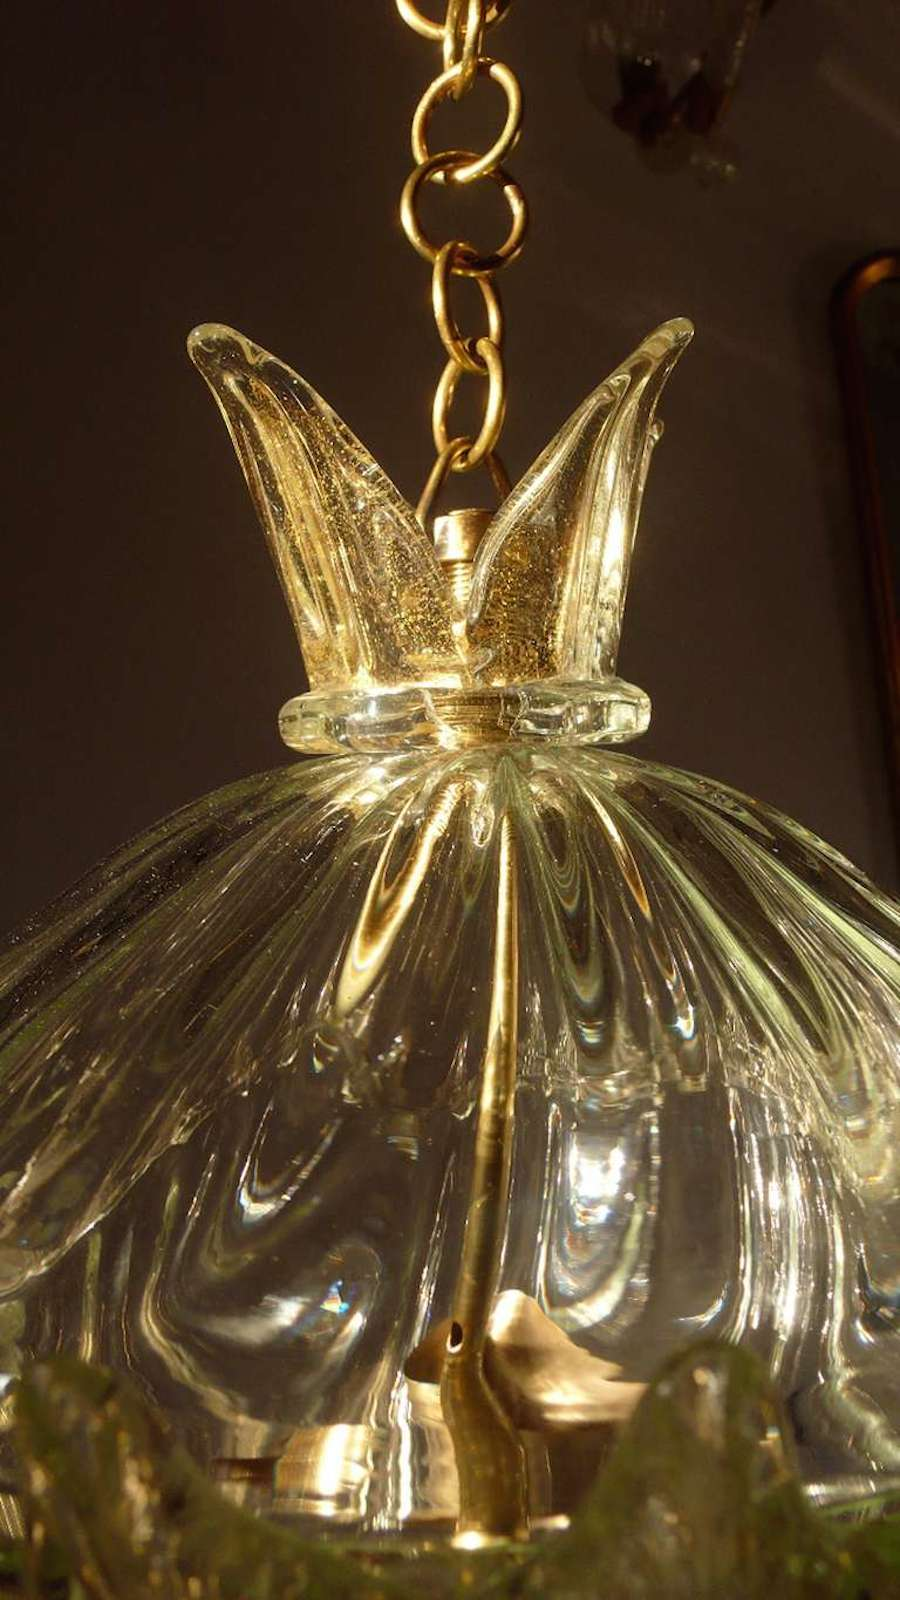 Barovier e toso chandelier the queen 1940 at 1stdibs for Barovier e toso